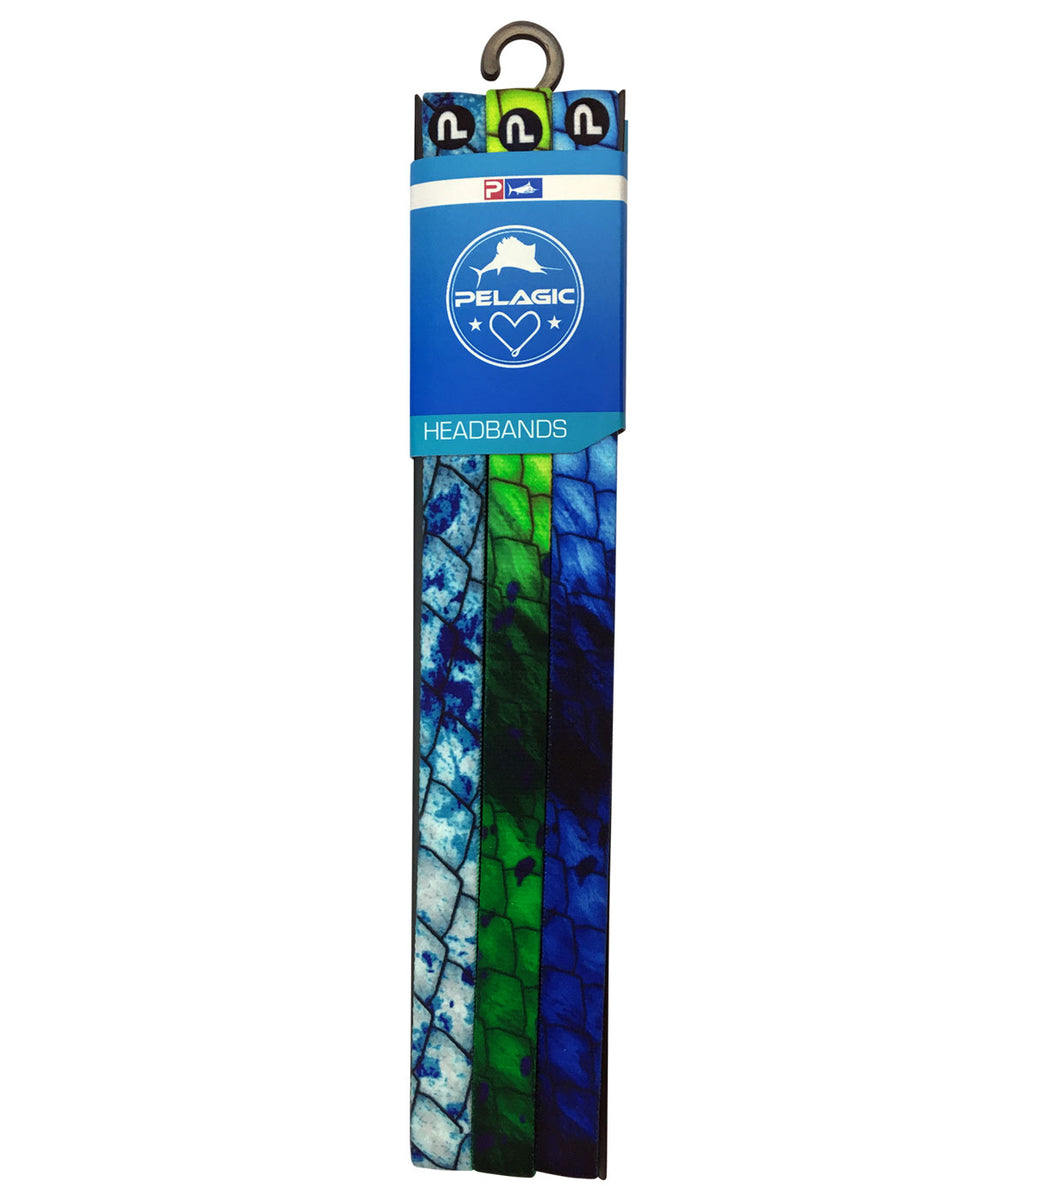 Headbands Dorado 3Pk Big Image - 1